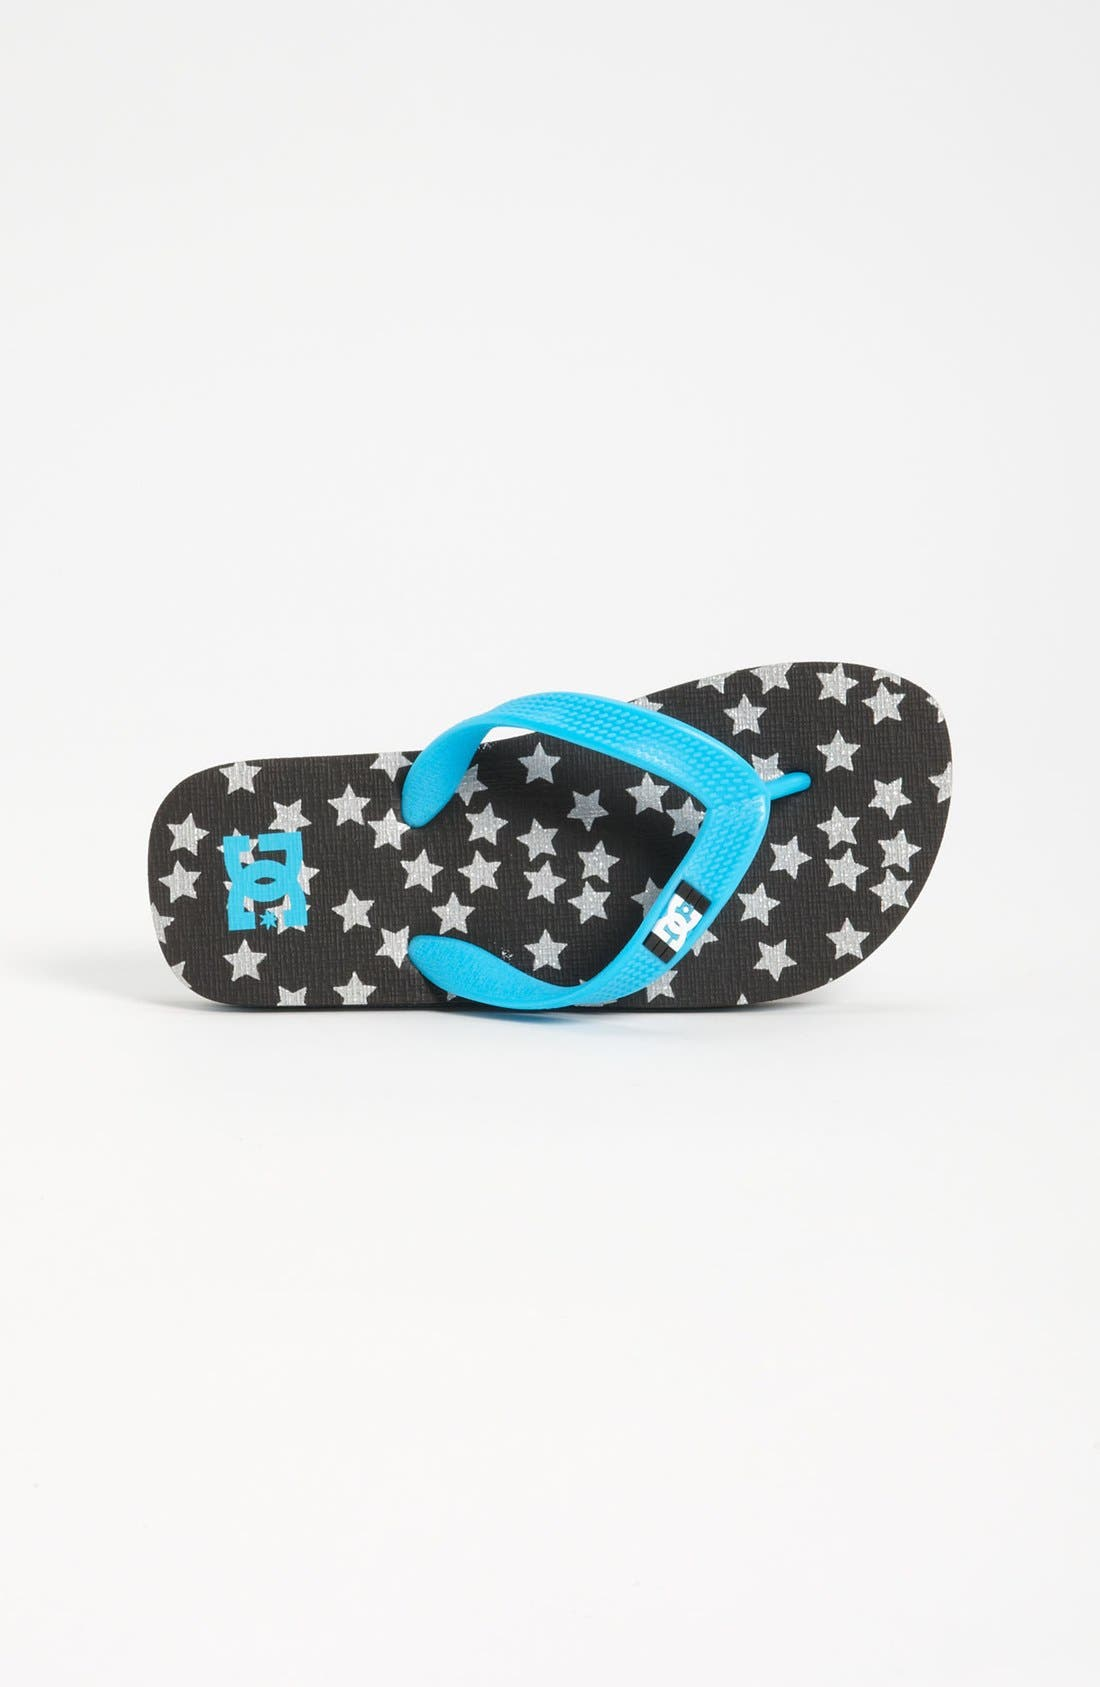 Alternate Image 3  - DC Shoes 'Spray' Flip Flop (Toddler, Little Kid & Big Kid)